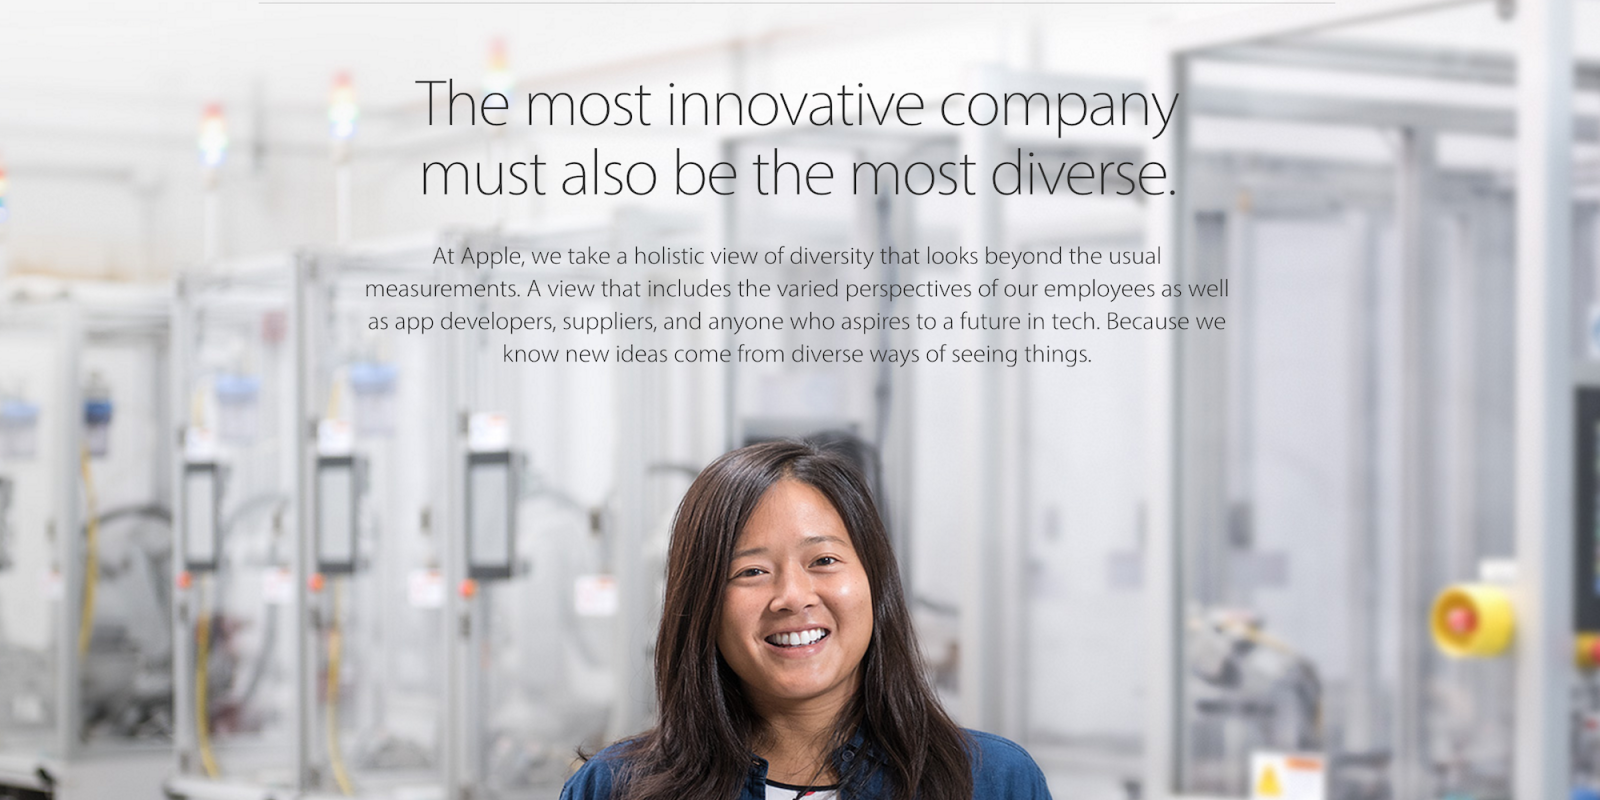 """apple company diversity Apple's ceo tim cook doesn't mince words when asked about the importance of diversity: """"i think the most diverse group will produce the best product, i firmly believe that""""."""